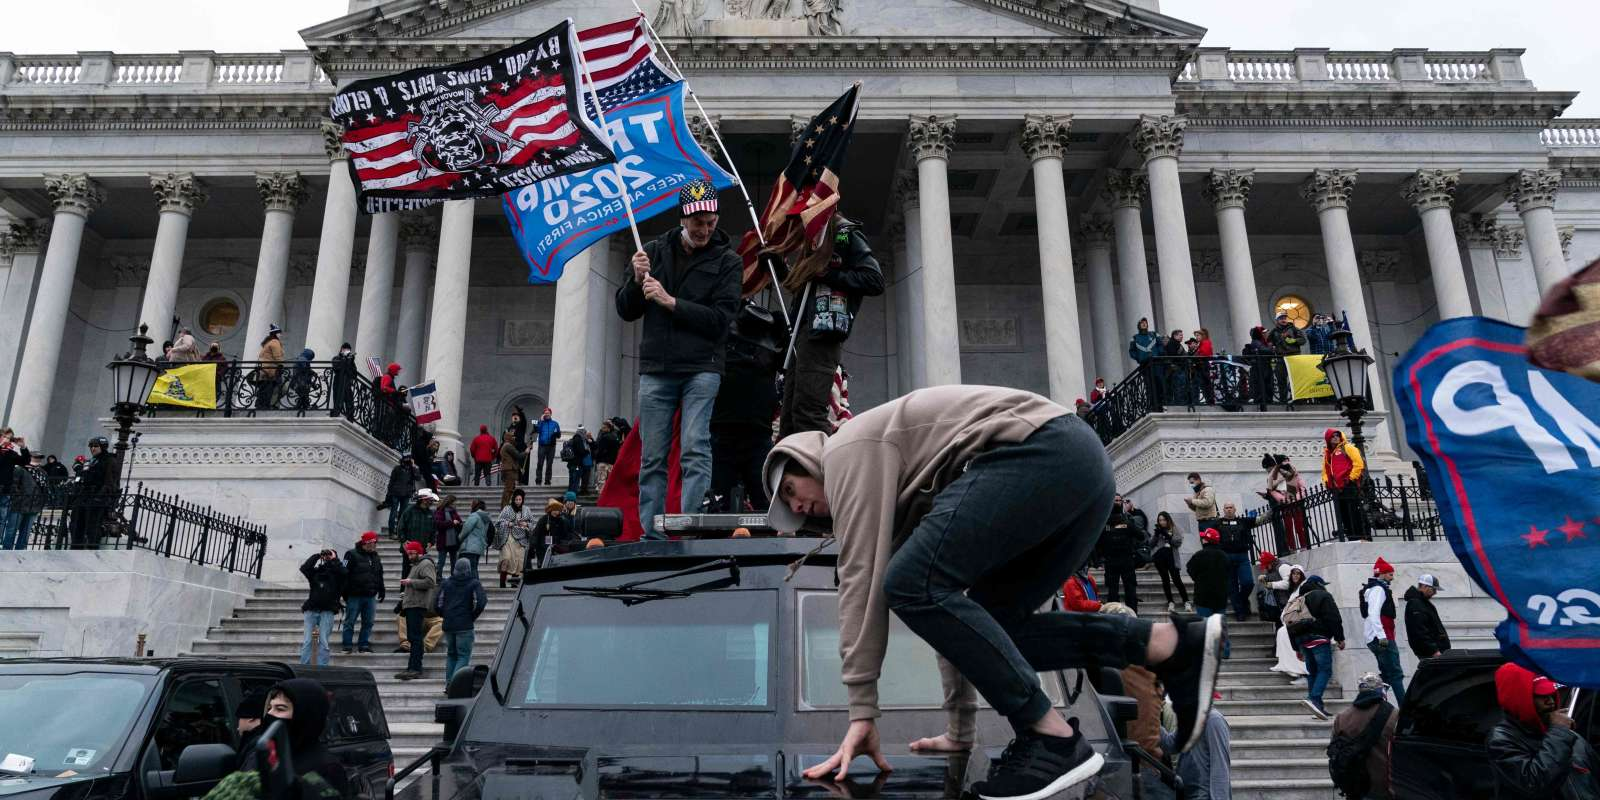 TOPSHOT - Supporters of US President Donald Trump protest outside the US Capitol on January 6, 2021, in Washington, DC. Demonstrators breeched security and entered the Capitol as Congress debated the a 2020 presidential election Electoral Vote Certification. / AFP / ALEX EDELMAN